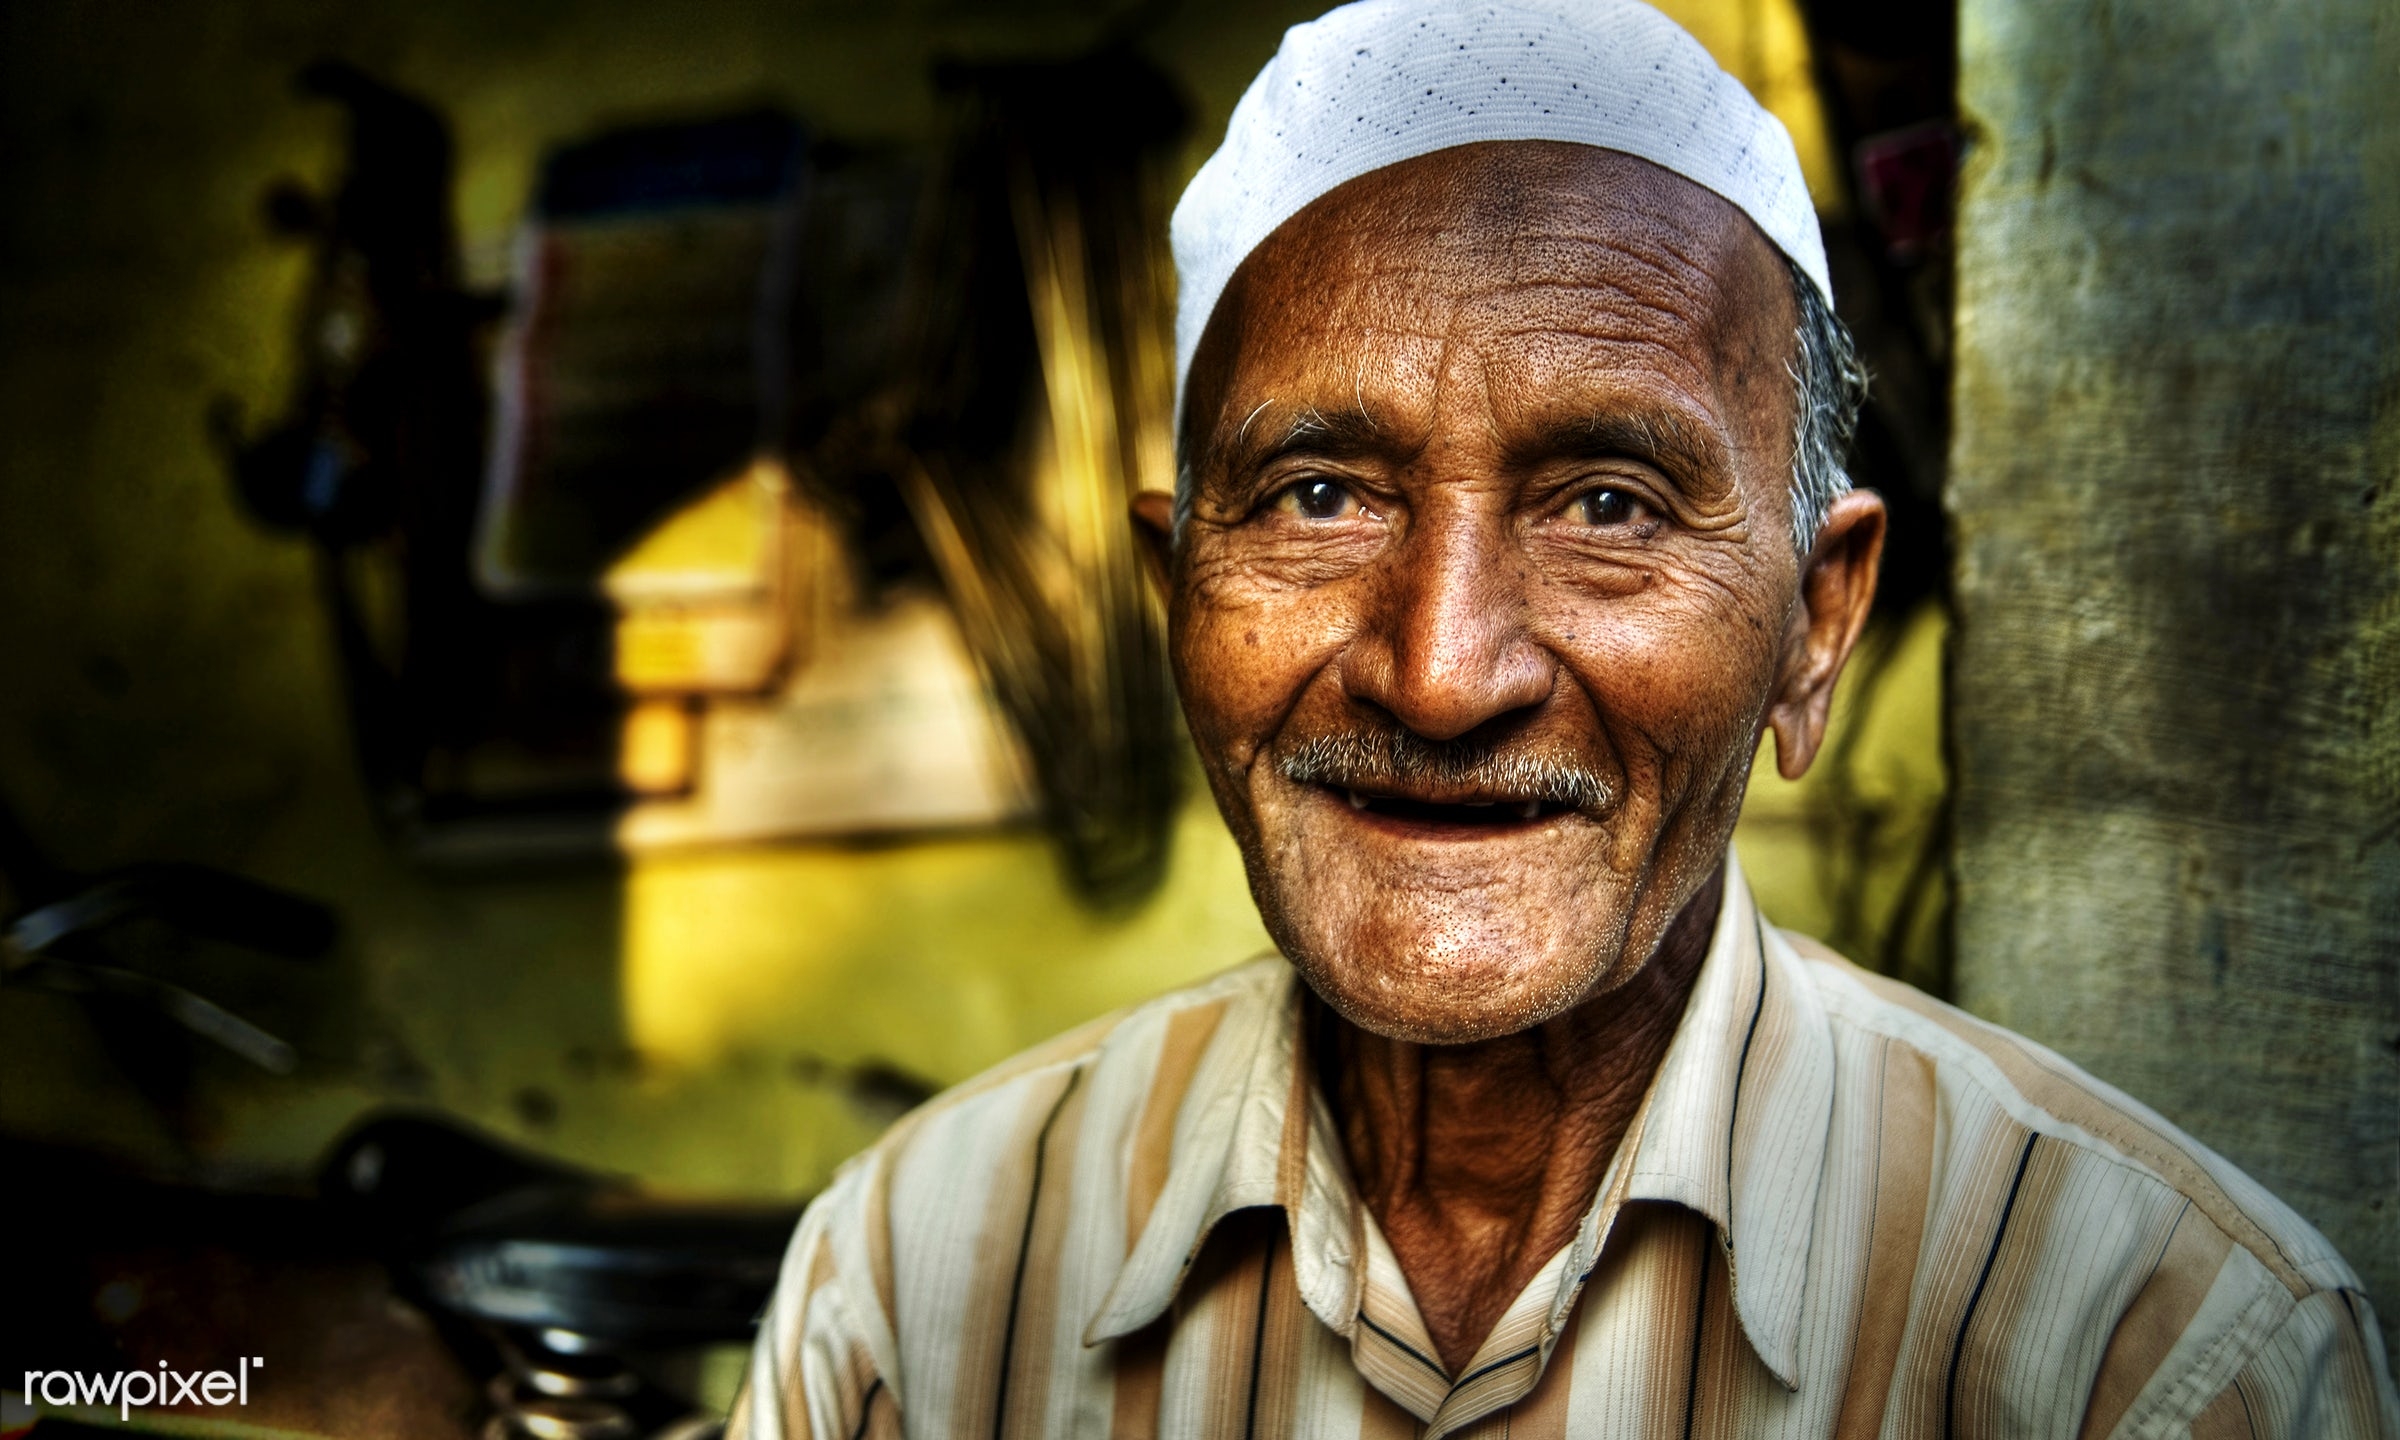 Portrait of a happy Indian man - poverty, adult, asia, asian ethnicity, characters, cheerful, concepts and ideas, ethnic,...